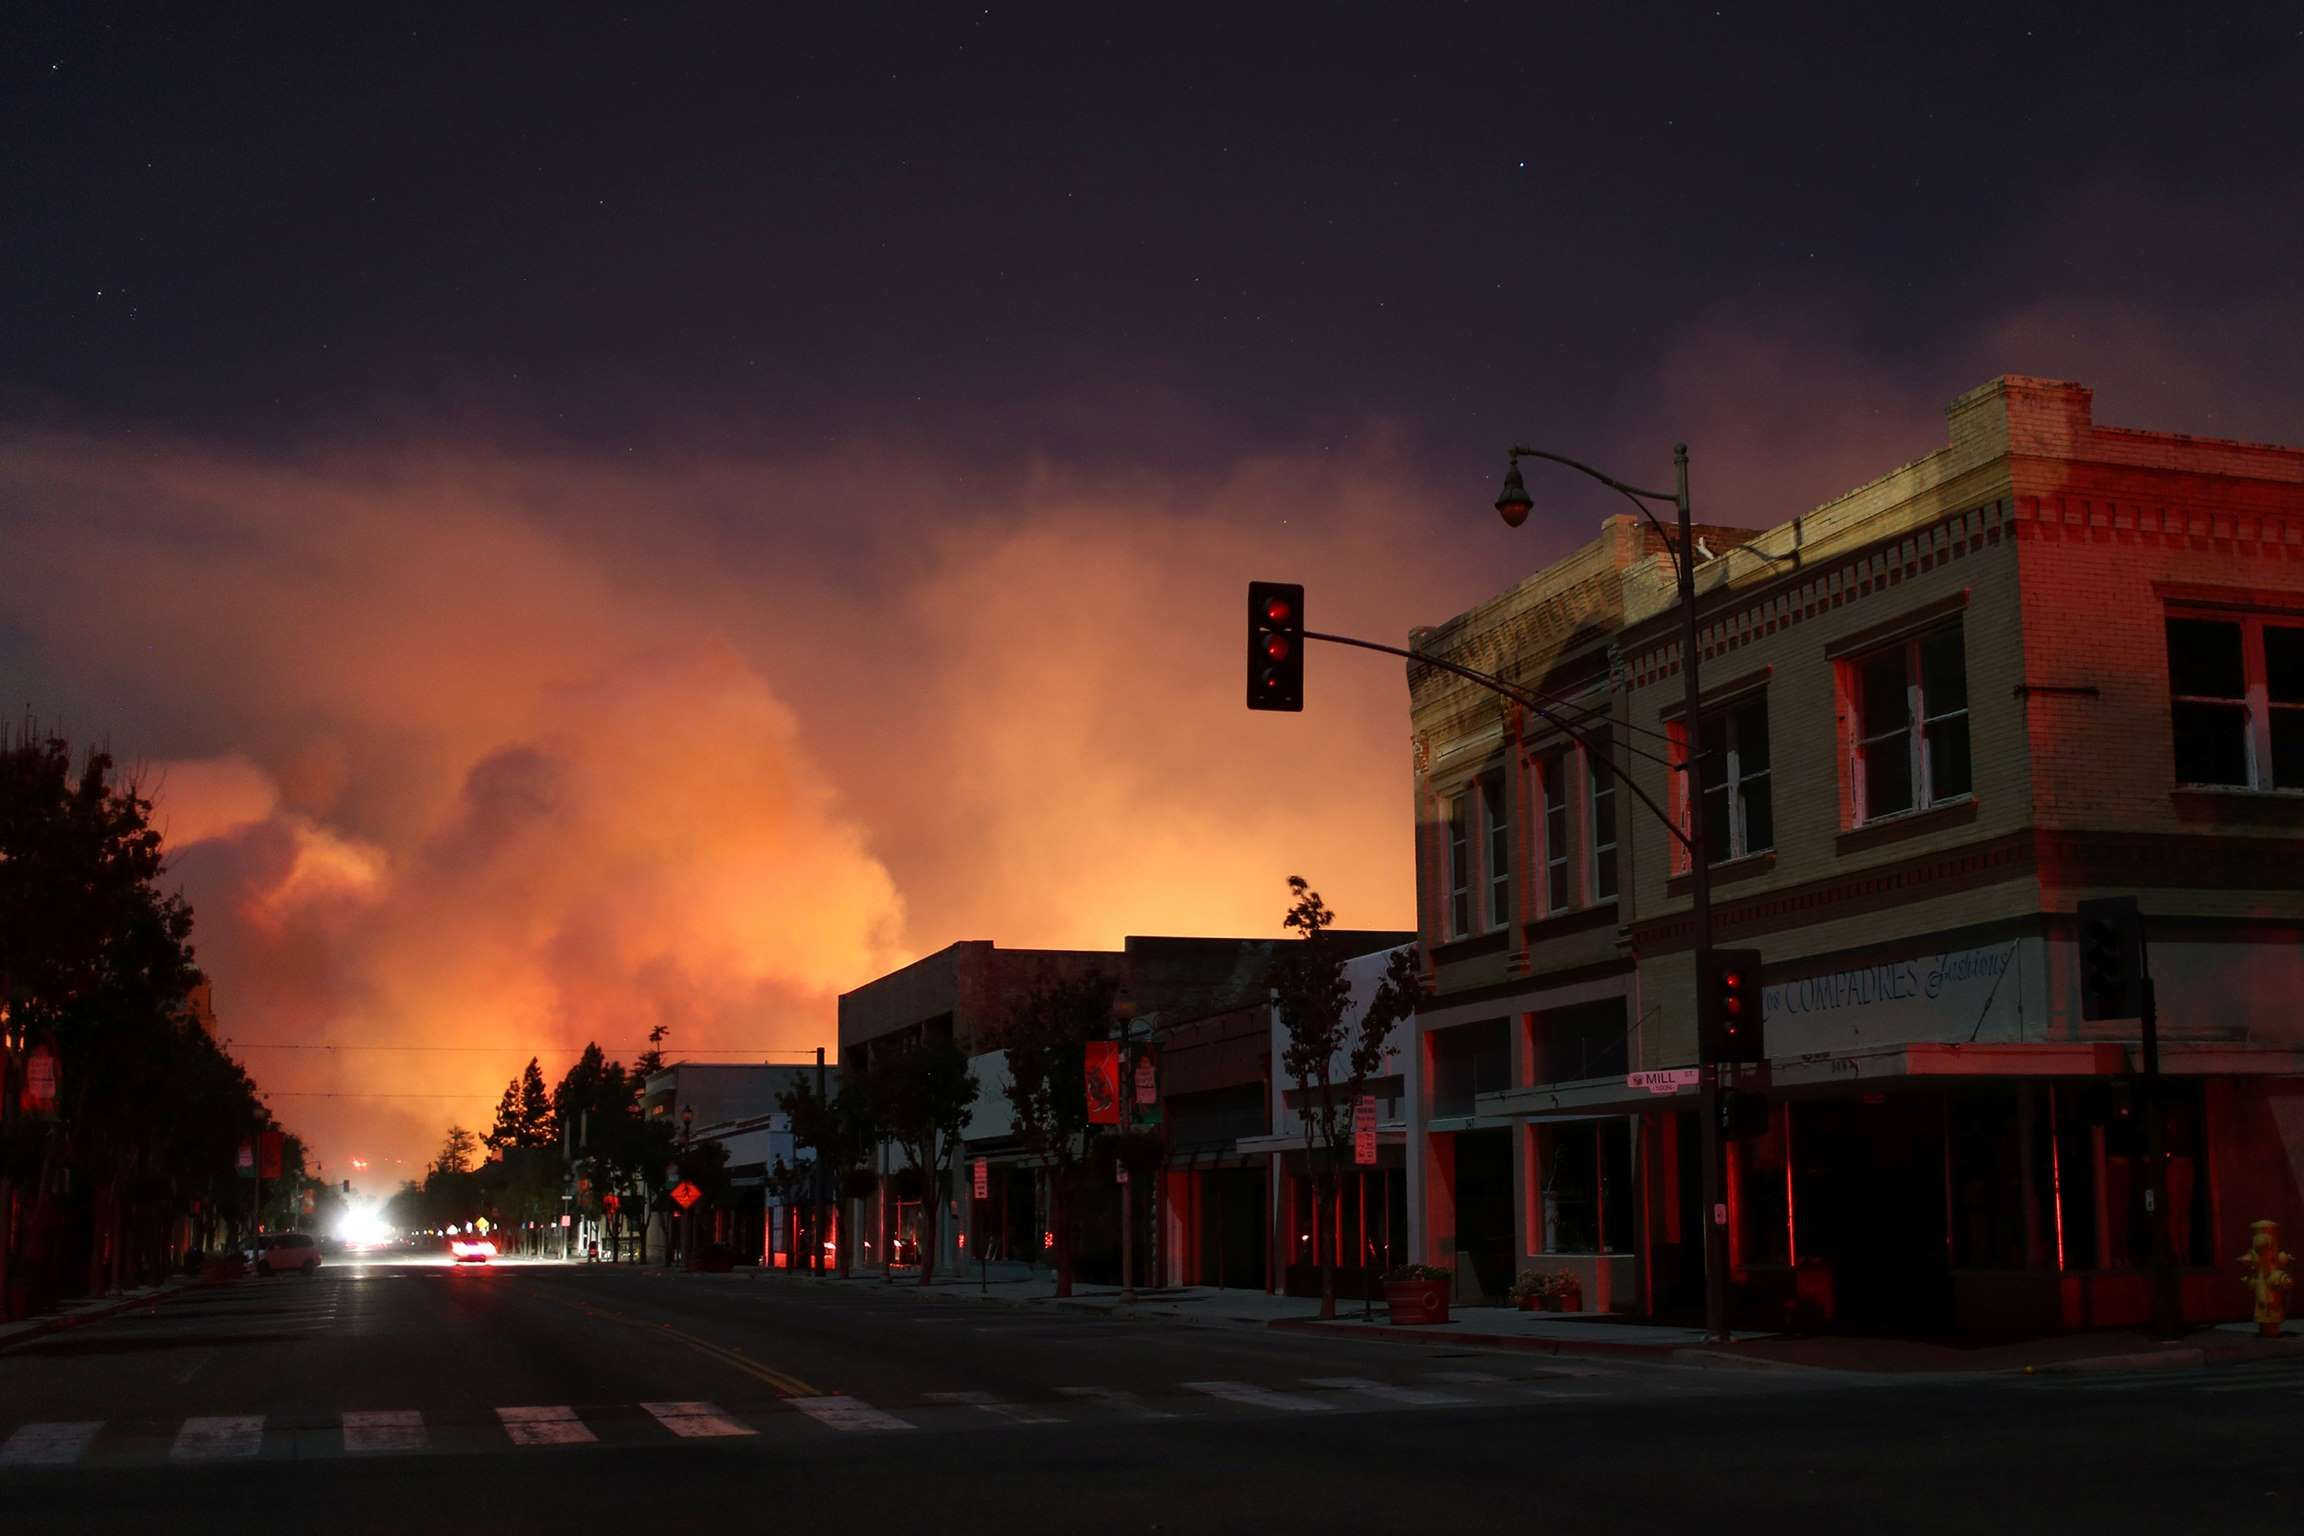 Pin By Megan Barry On What In 2020 California Wildfires Ventura California California